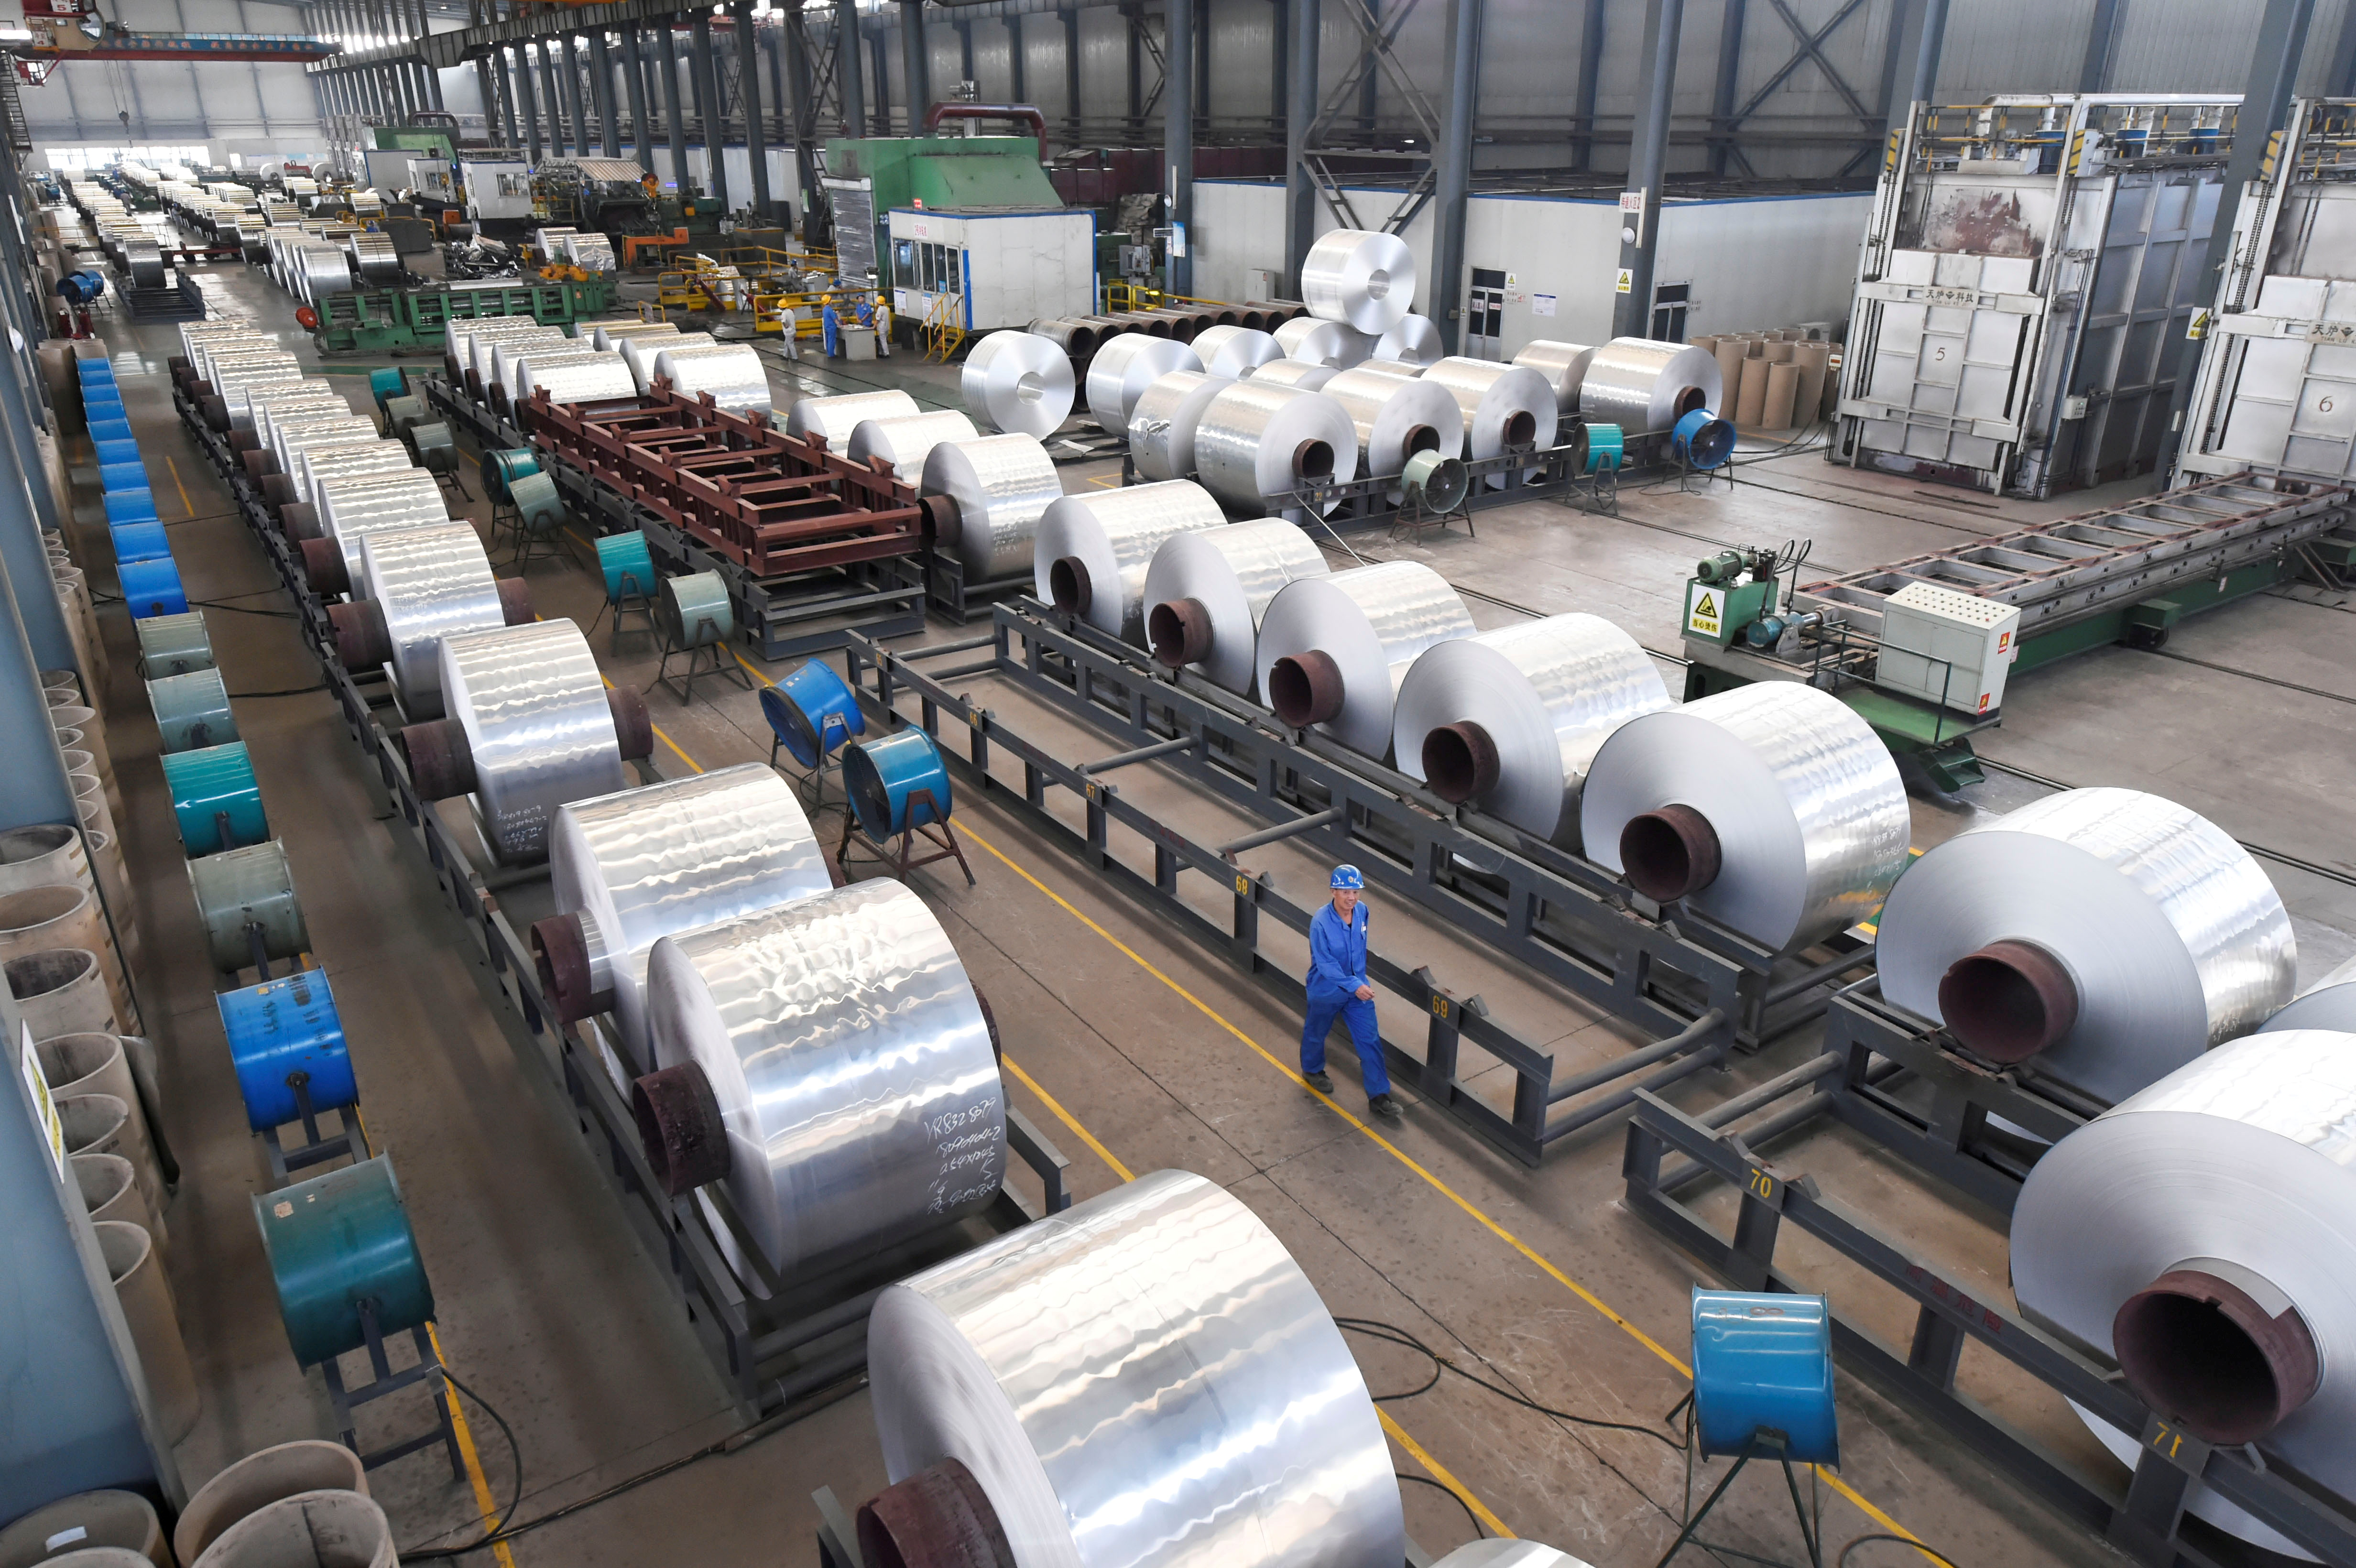 Workers are seen next to aluminium rolls at a plant in Binzhou, Shandong province, China September 13, 2018. Picture taken September 13, 2018. REUTERS/Stringer